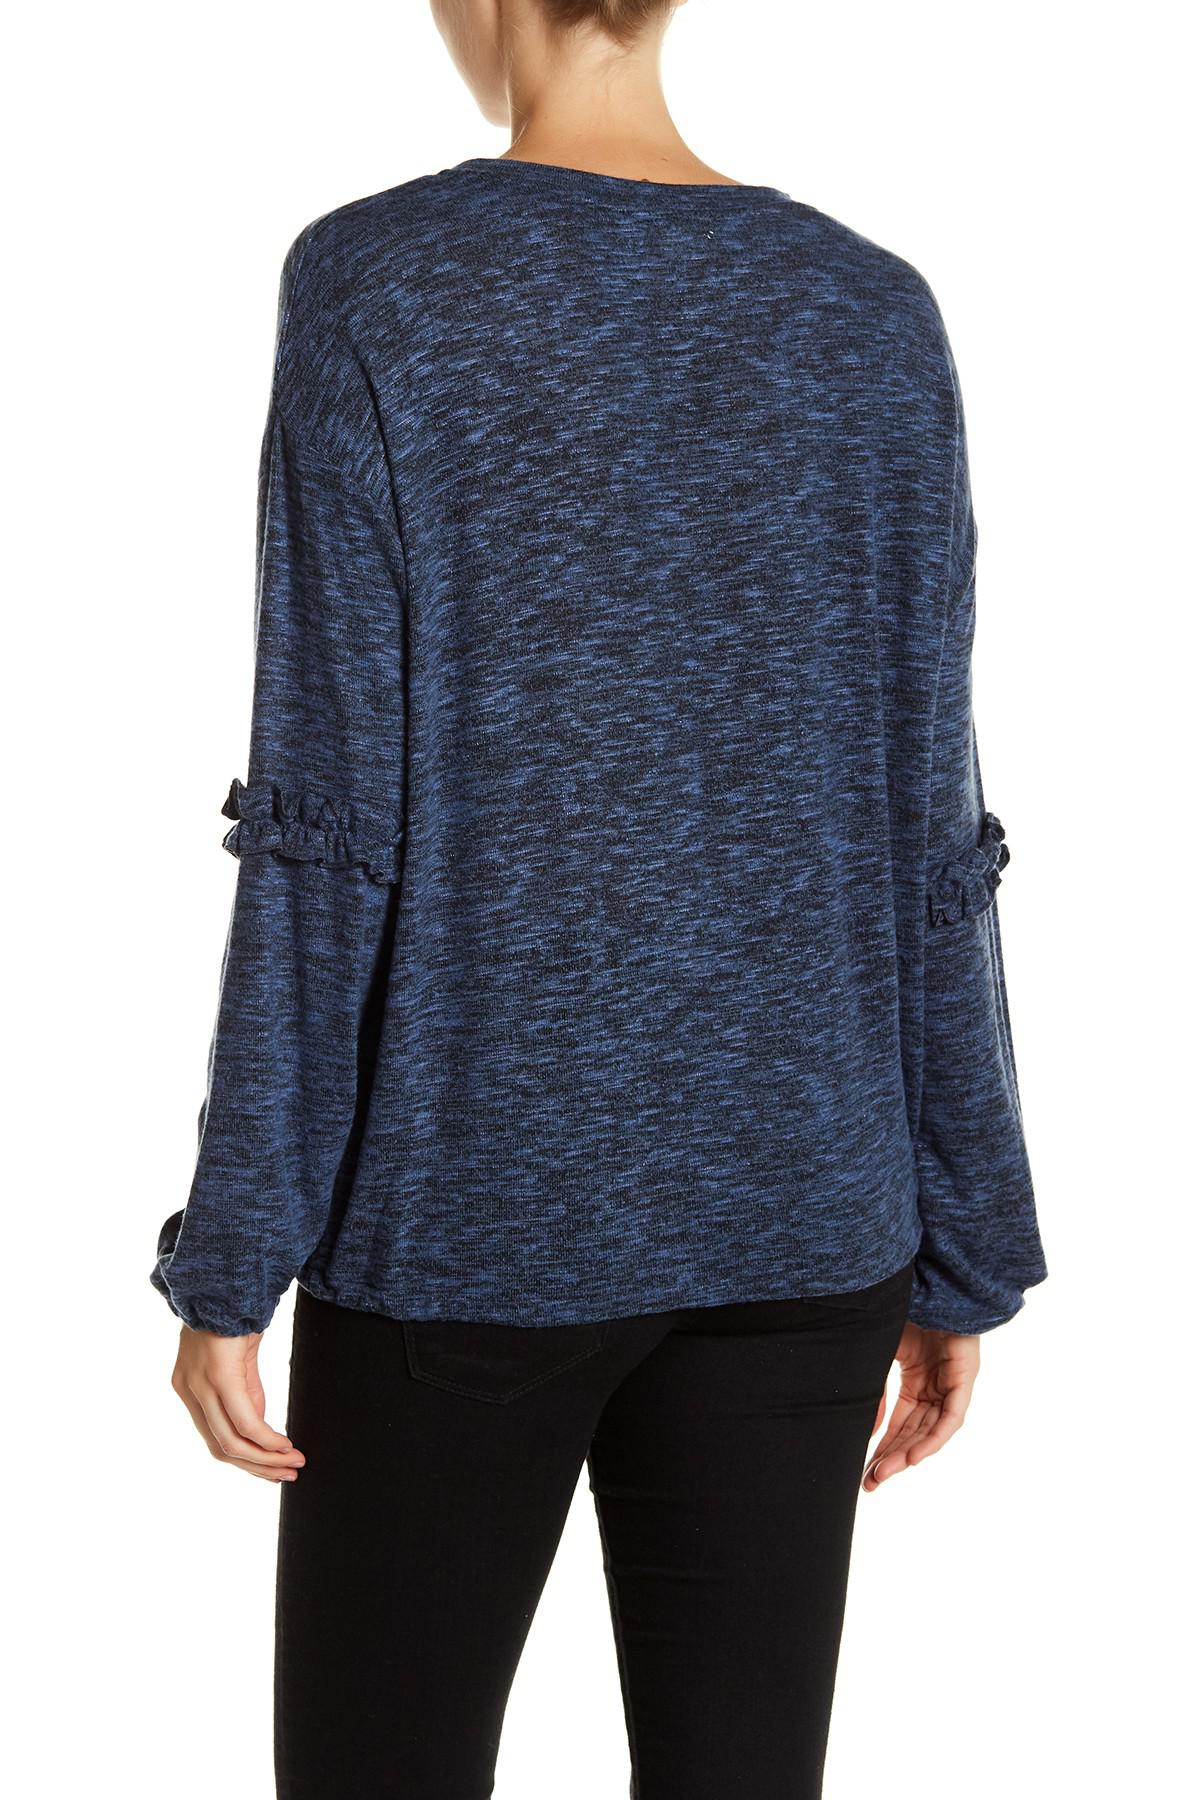 be58f1914cc Lyst - Two By Vince Camuto Marled Knit Bubble Sleeve Shirt in Blue